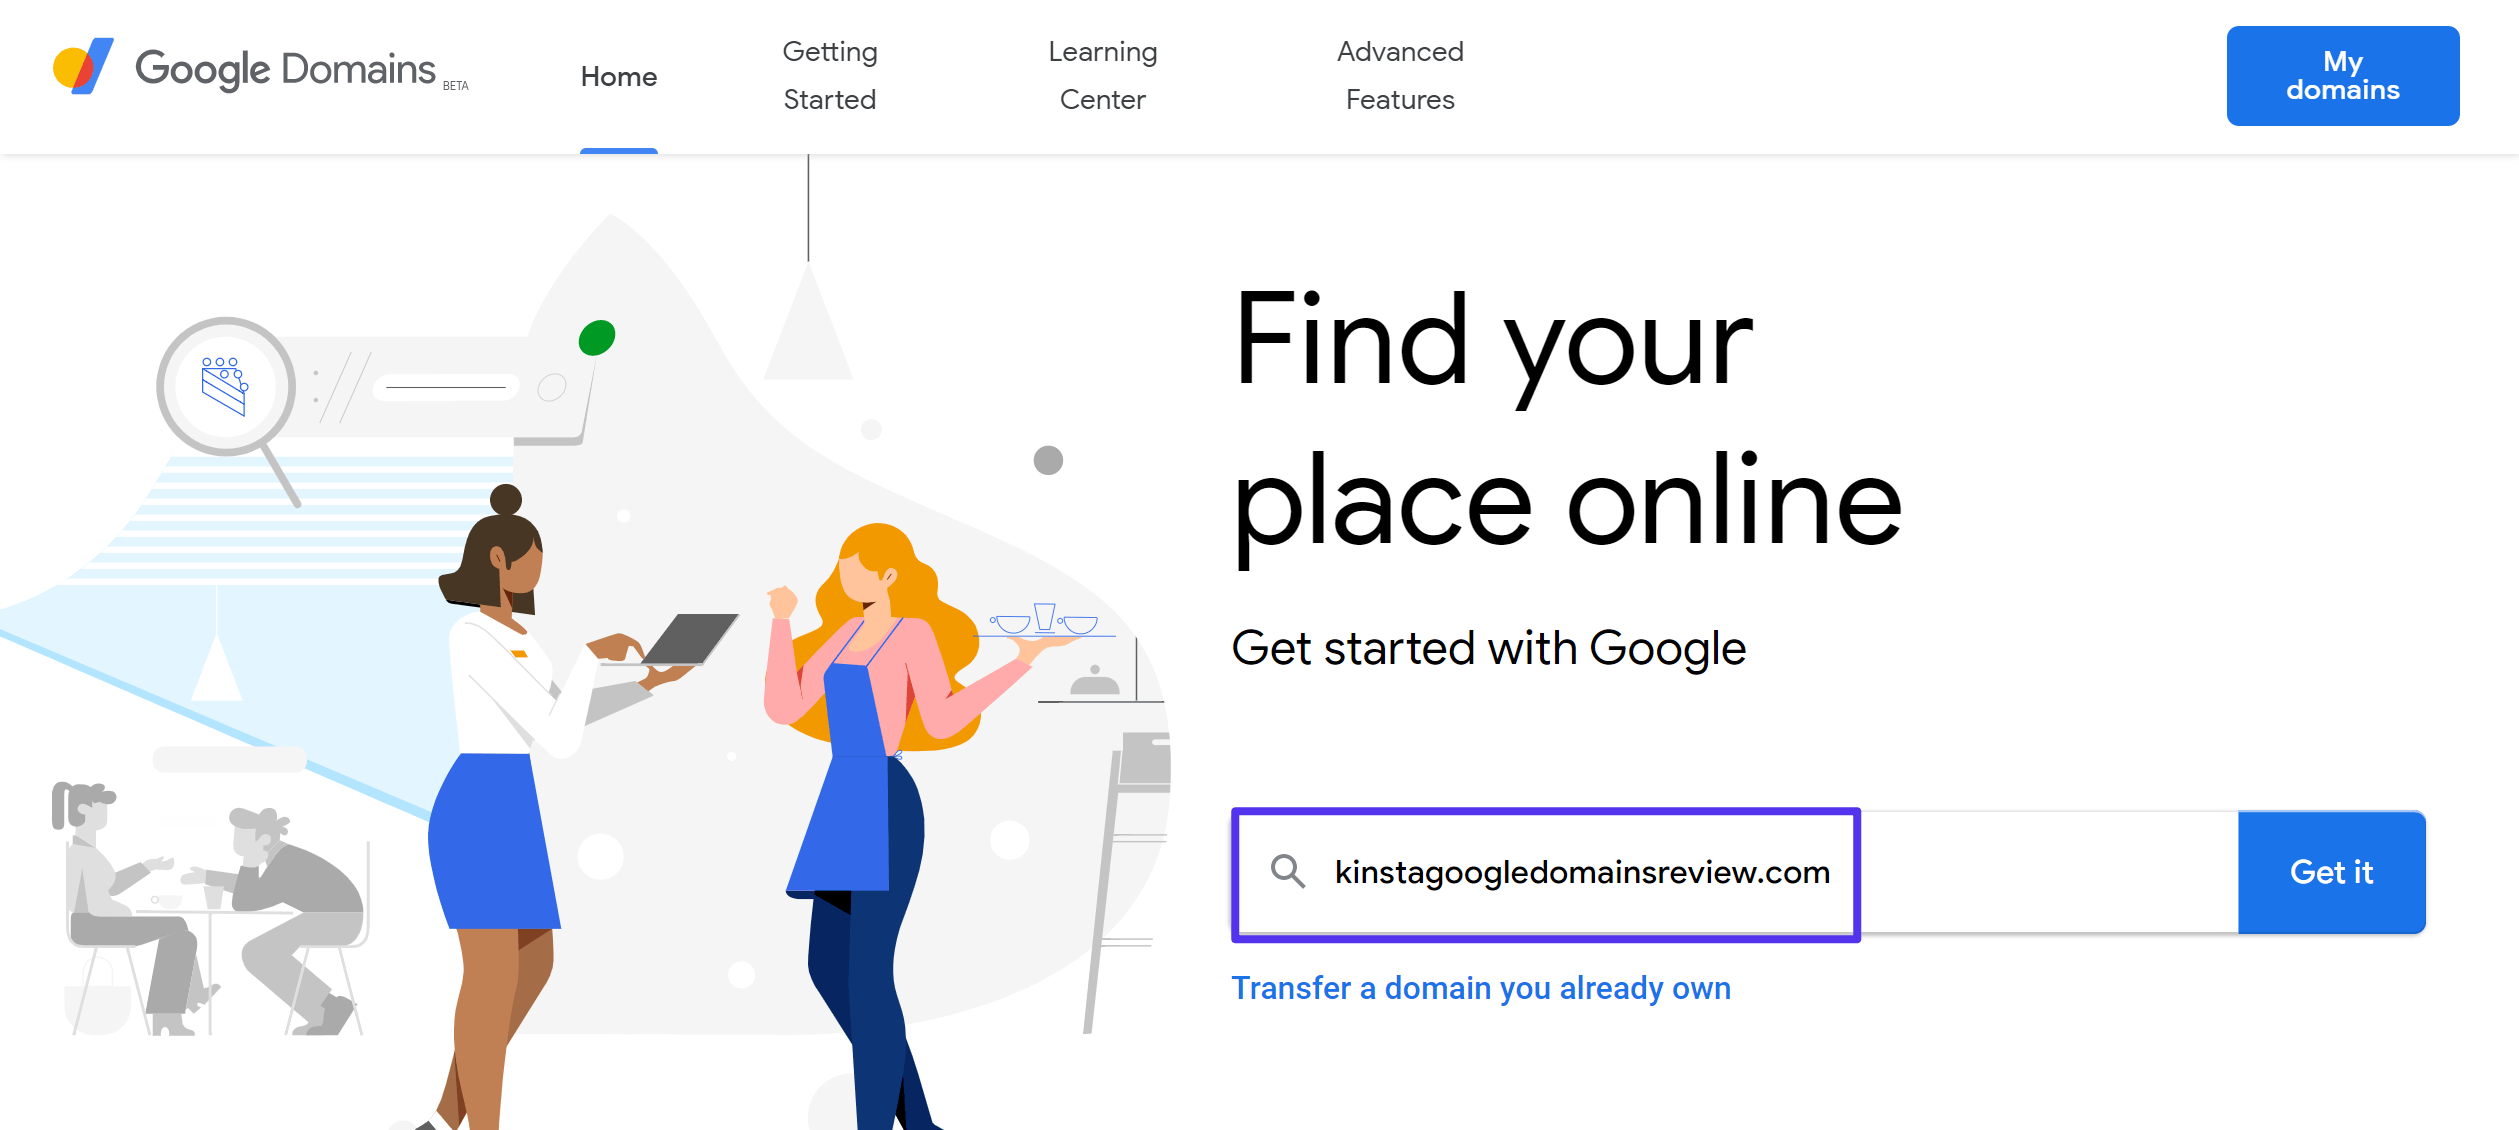 google domains review: Search for your domain